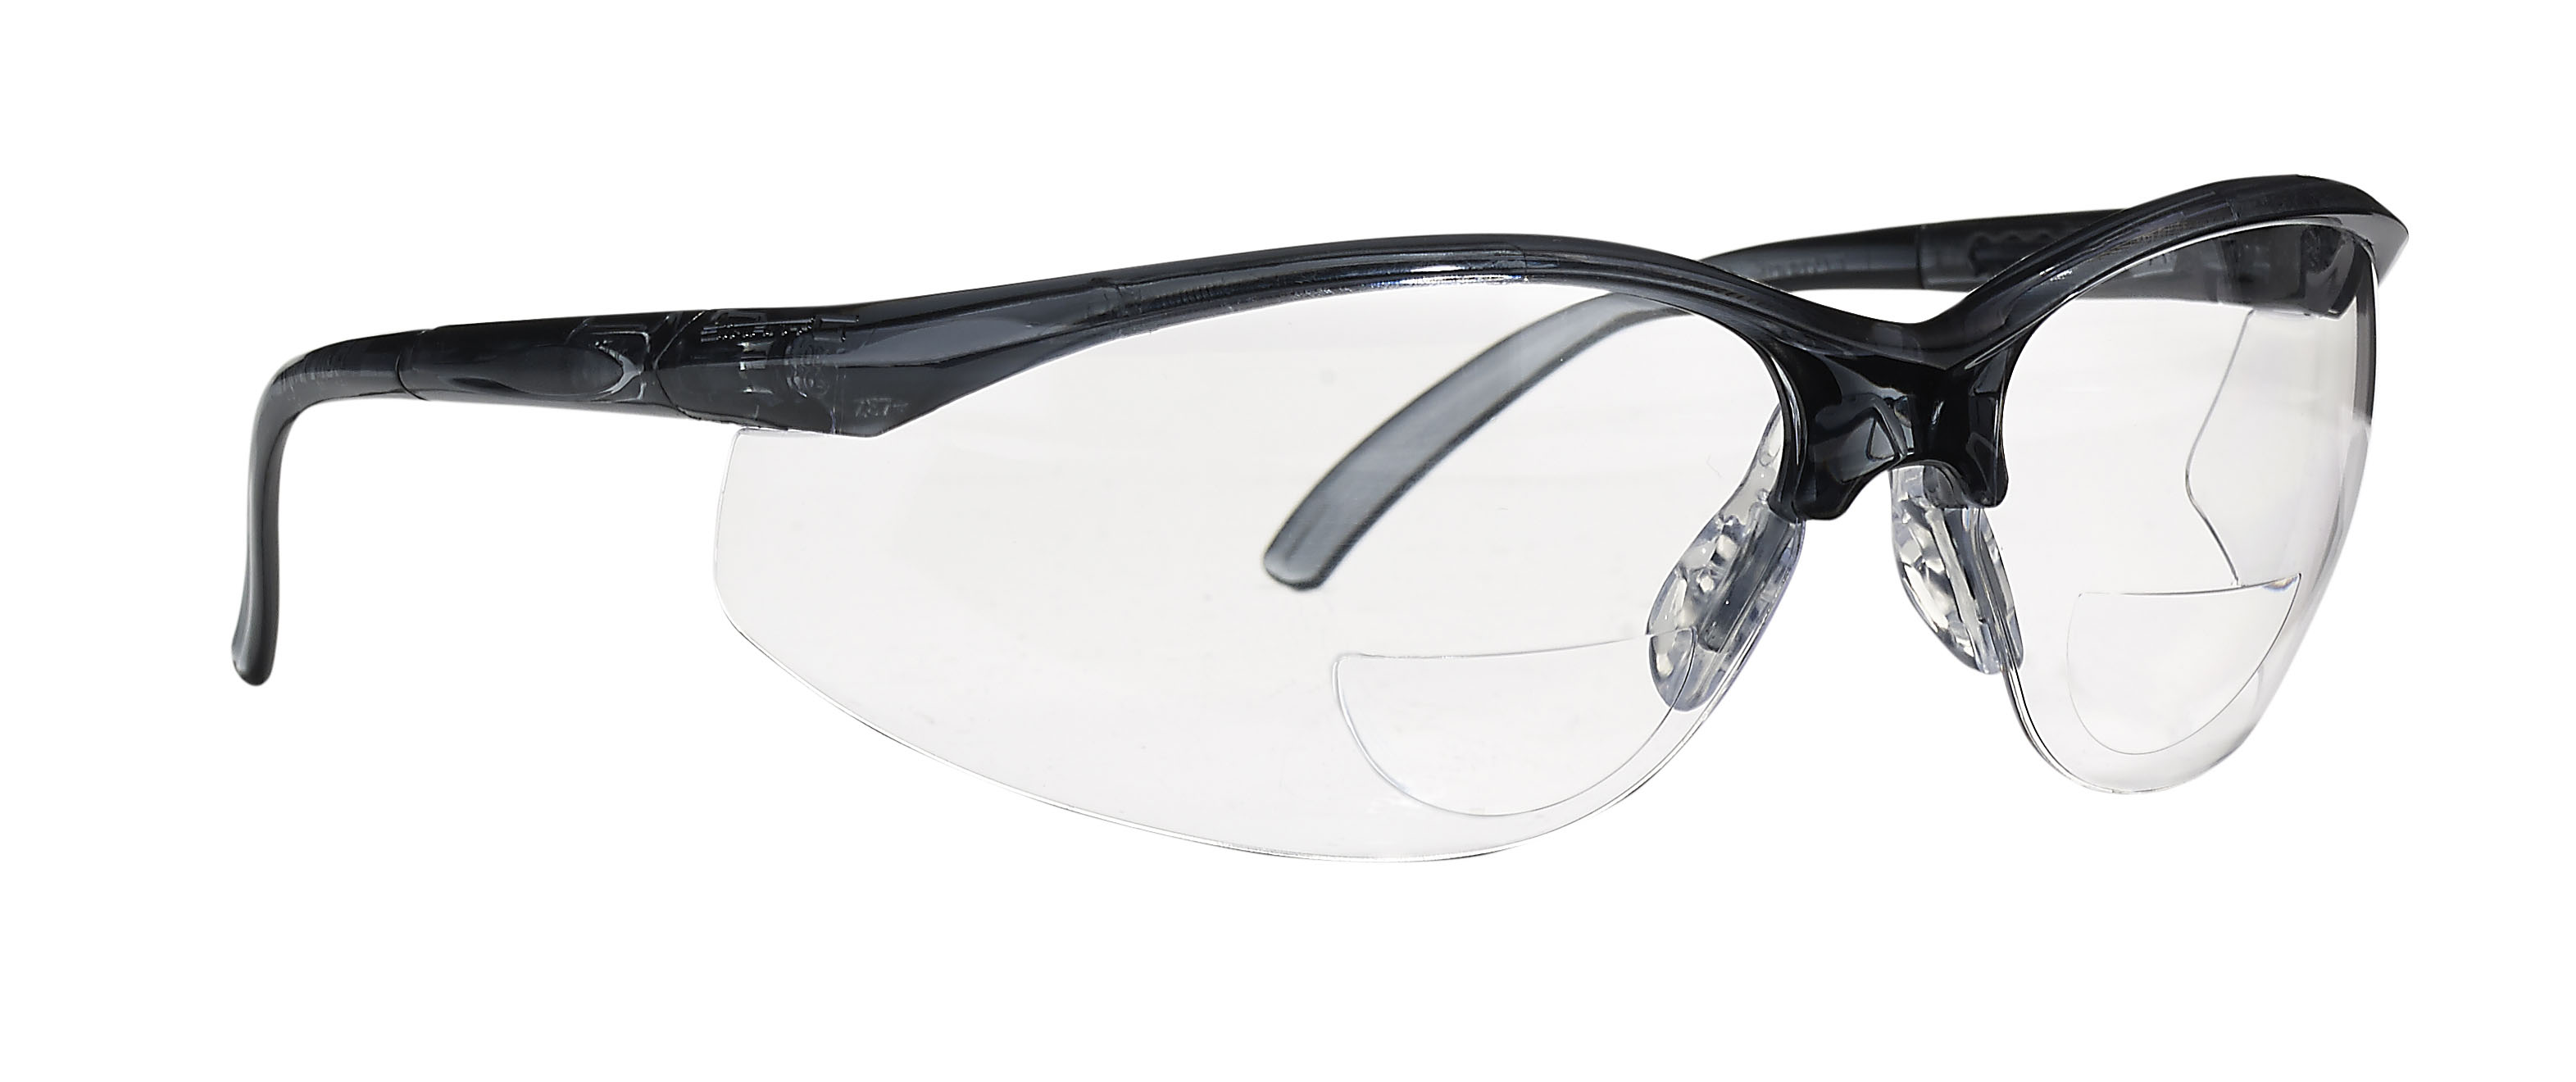 Safety Glasses - Renegade Glasses - 2.0 Magnification (10/bx)